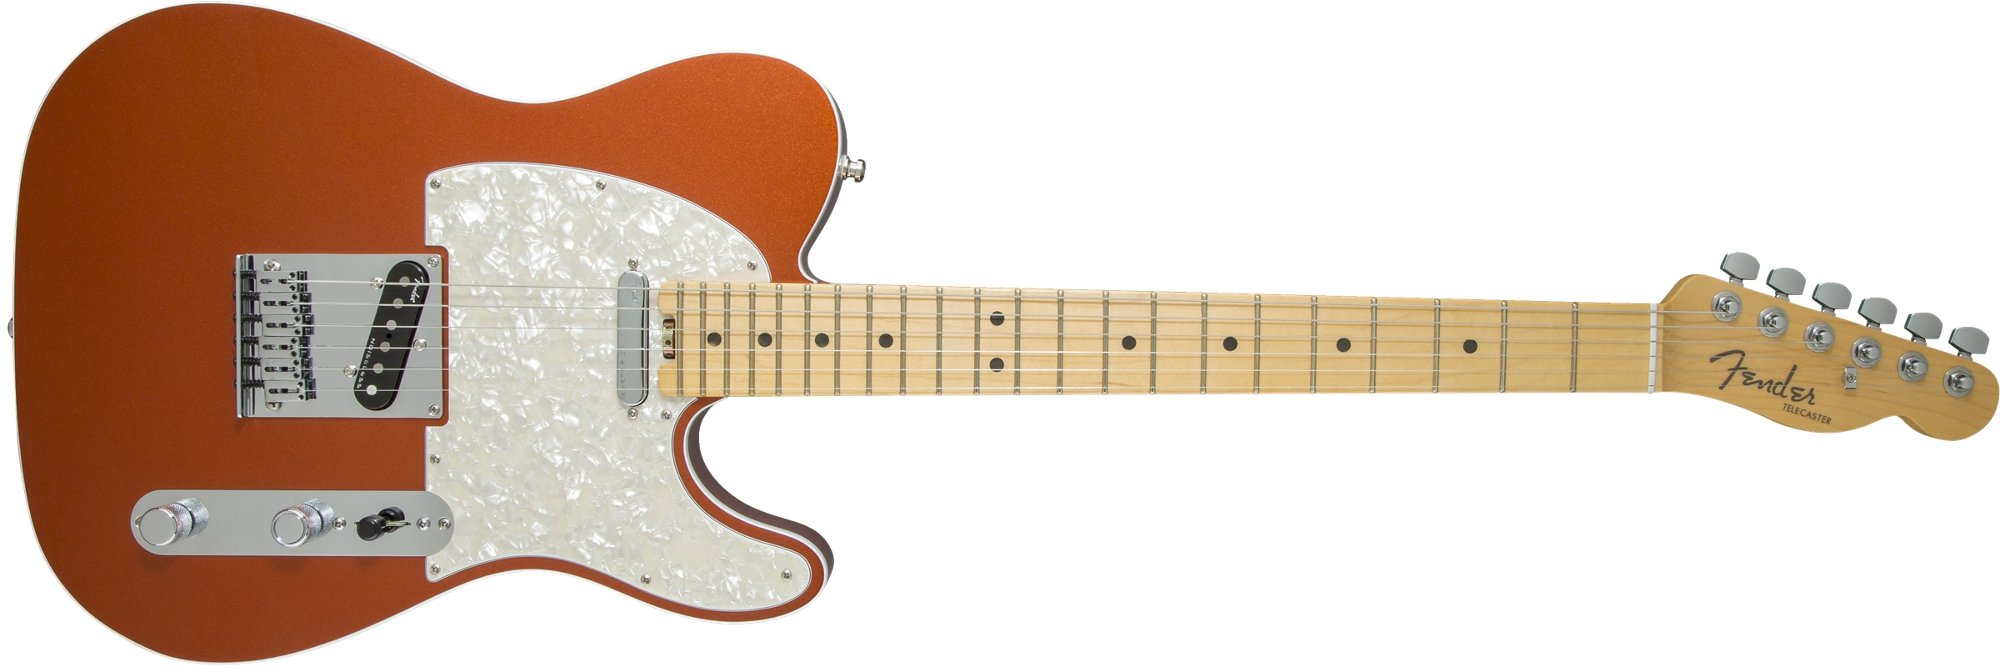 Single Cutaway SS Electric Guitar with Alder Body and Maple Fingerboard